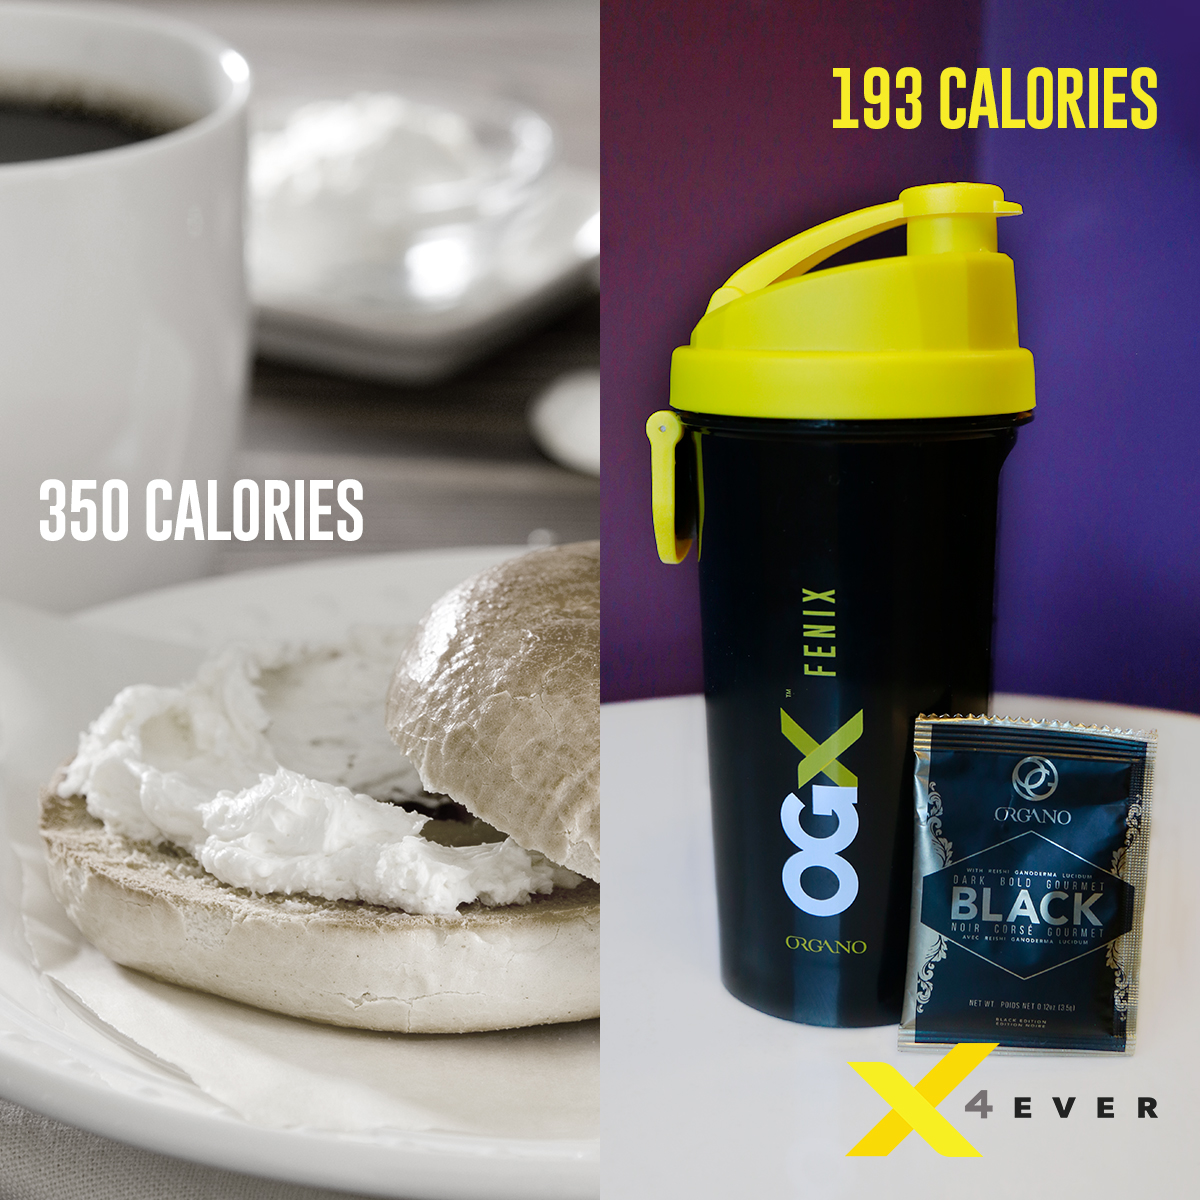 Shakeoverbreakfast_Calories2